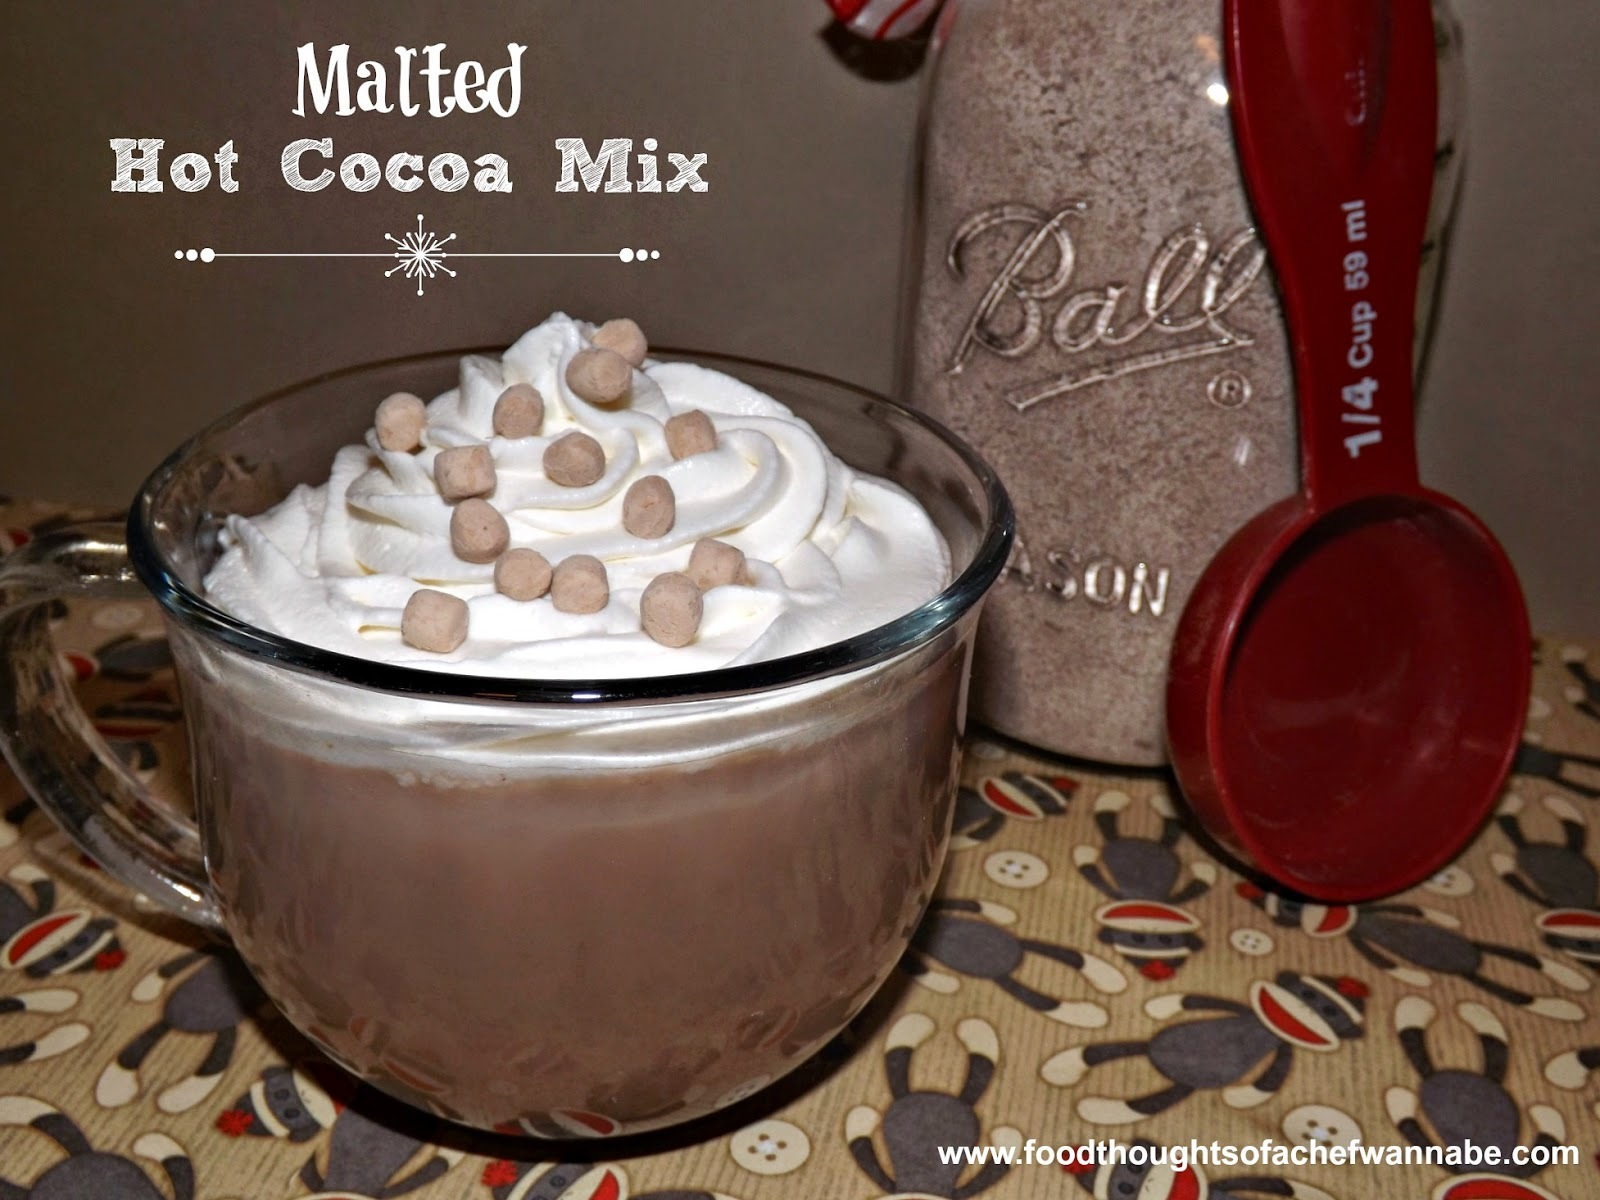 Malted Hot Cocoa Mix